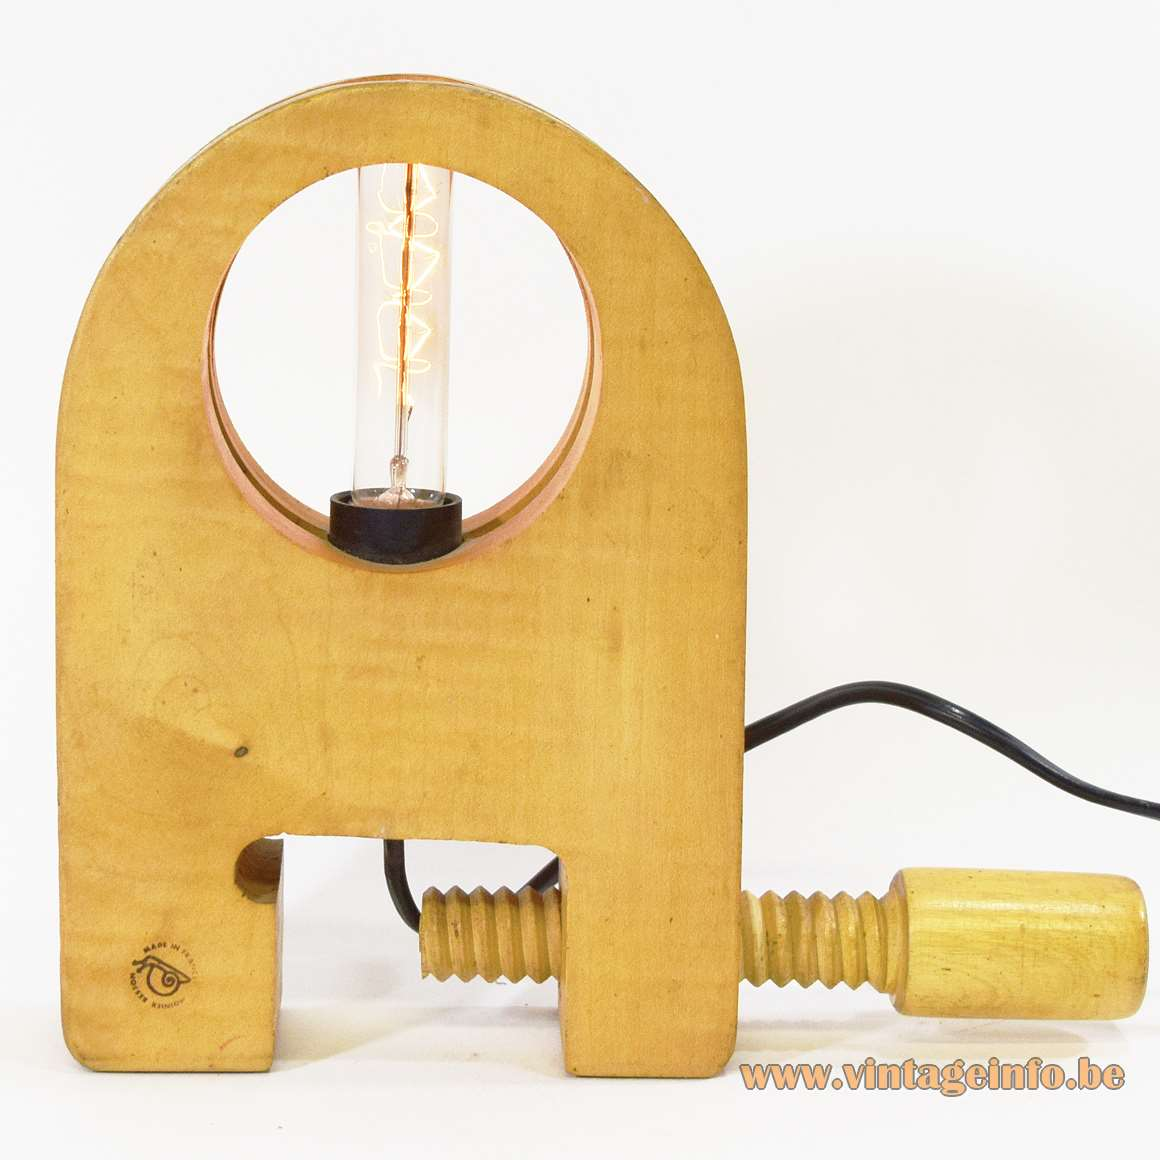 Moinier Besson Table Lamp maple wood vise E14 socket 1970s 1980s snail logo Made in France